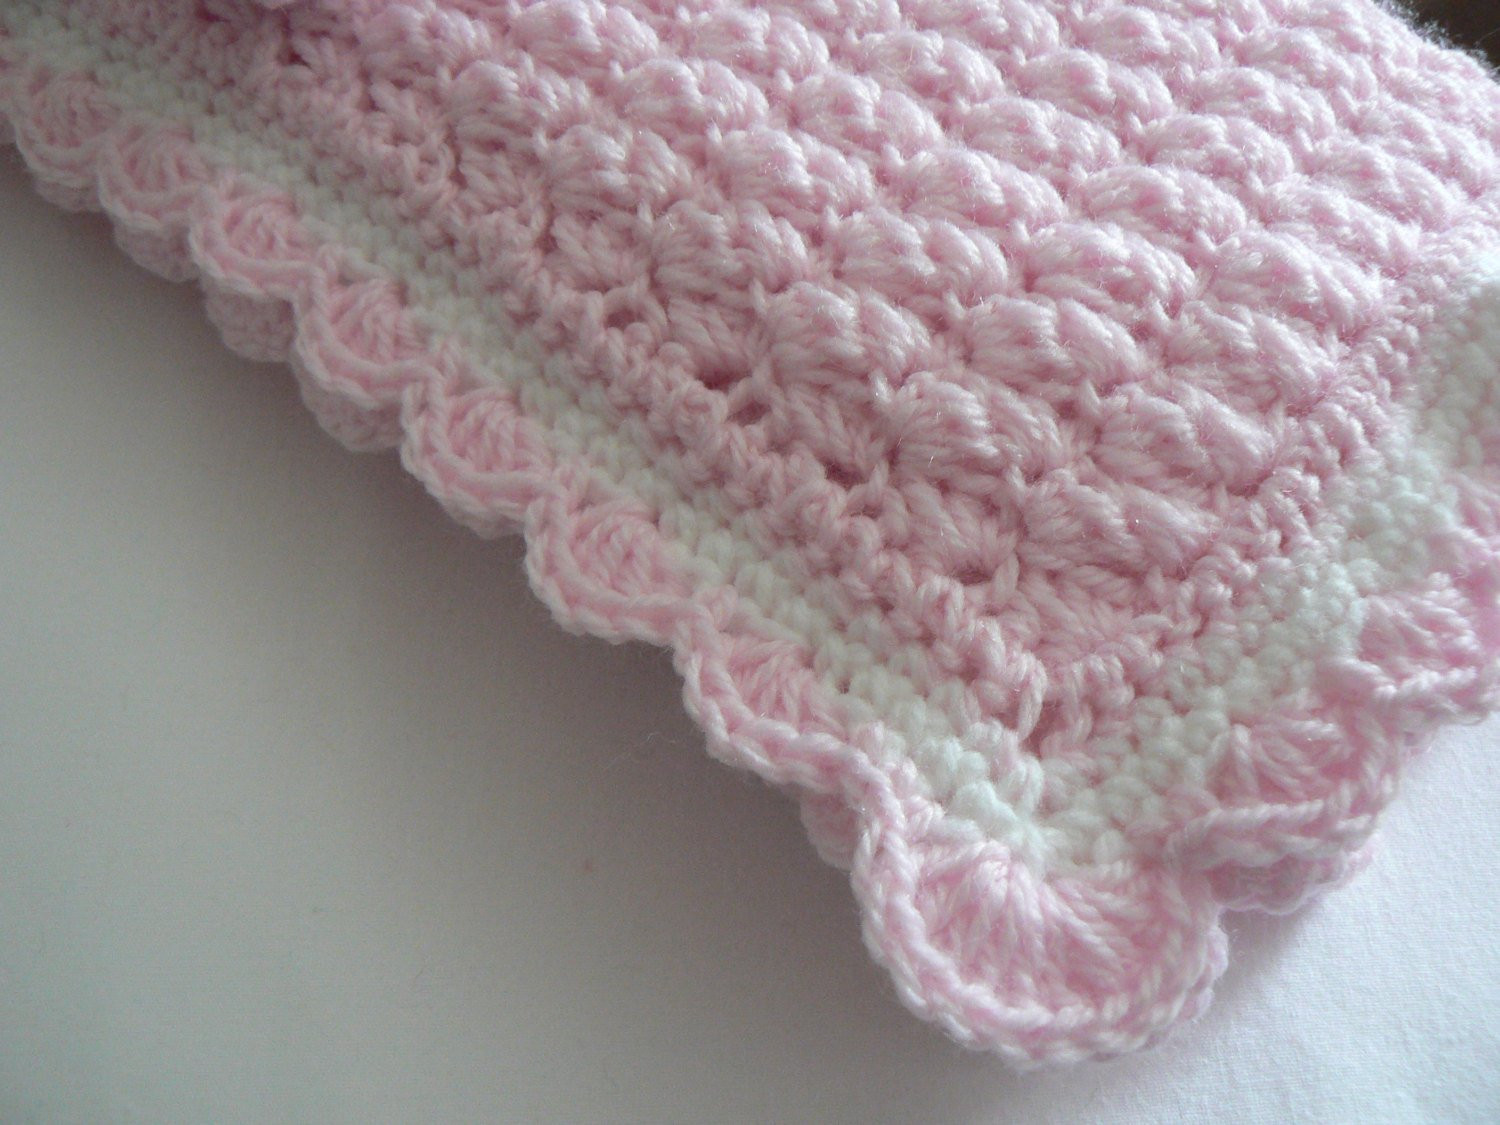 Baby Blanket Patterns Fresh Crochet Pattern Baby Blanket Angel Wings Stitch Easy Crochet Of Delightful 50 Pictures Baby Blanket Patterns